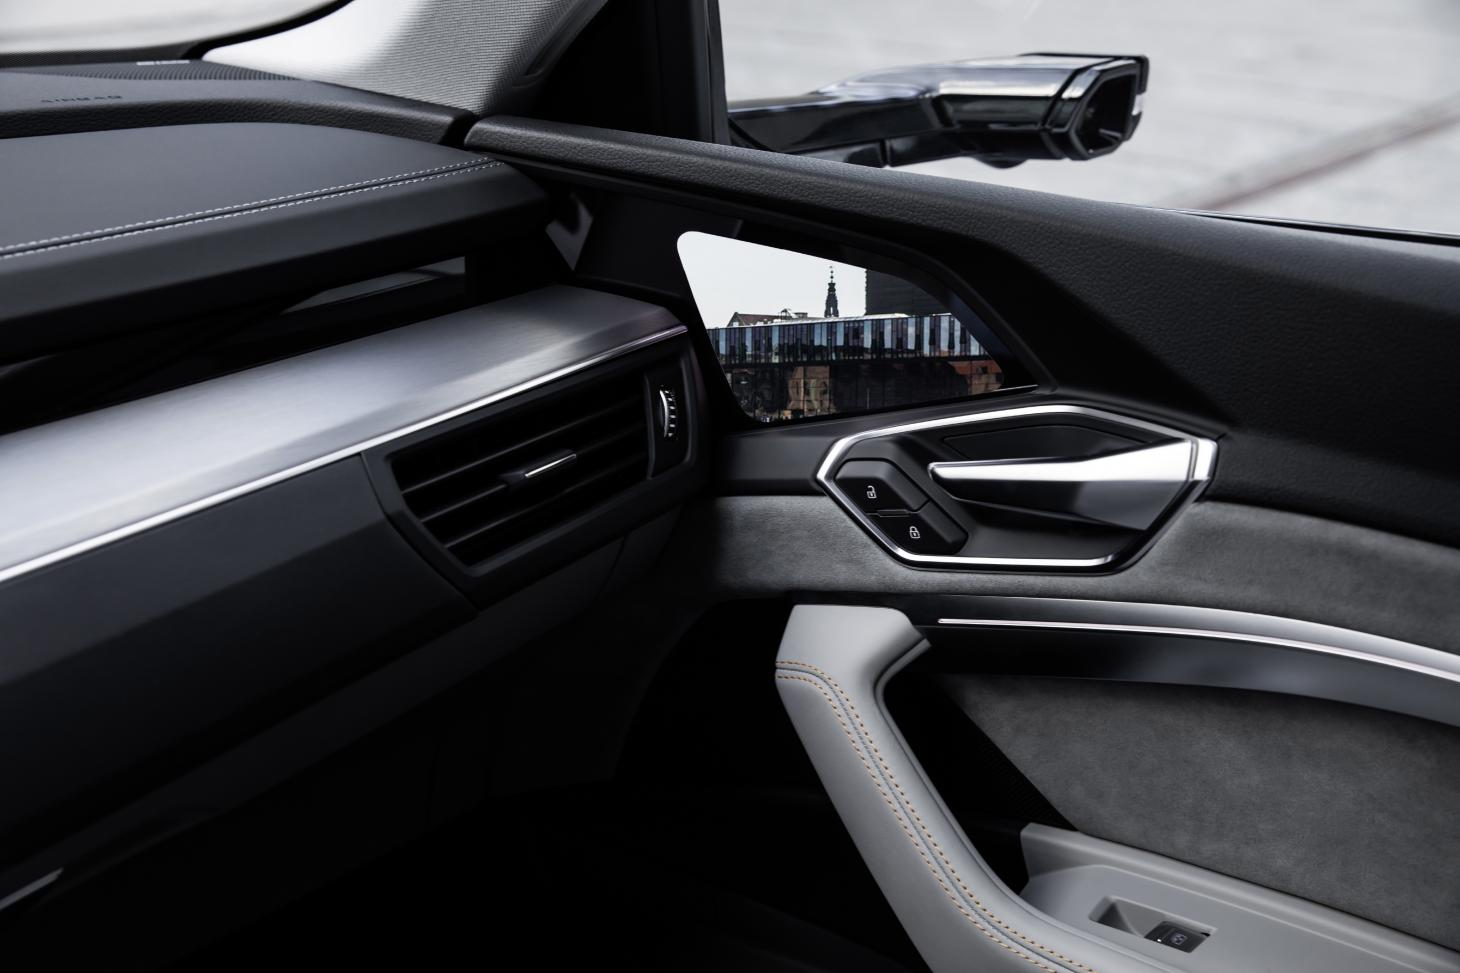 Audi e-tron SUV virtual mirror technology